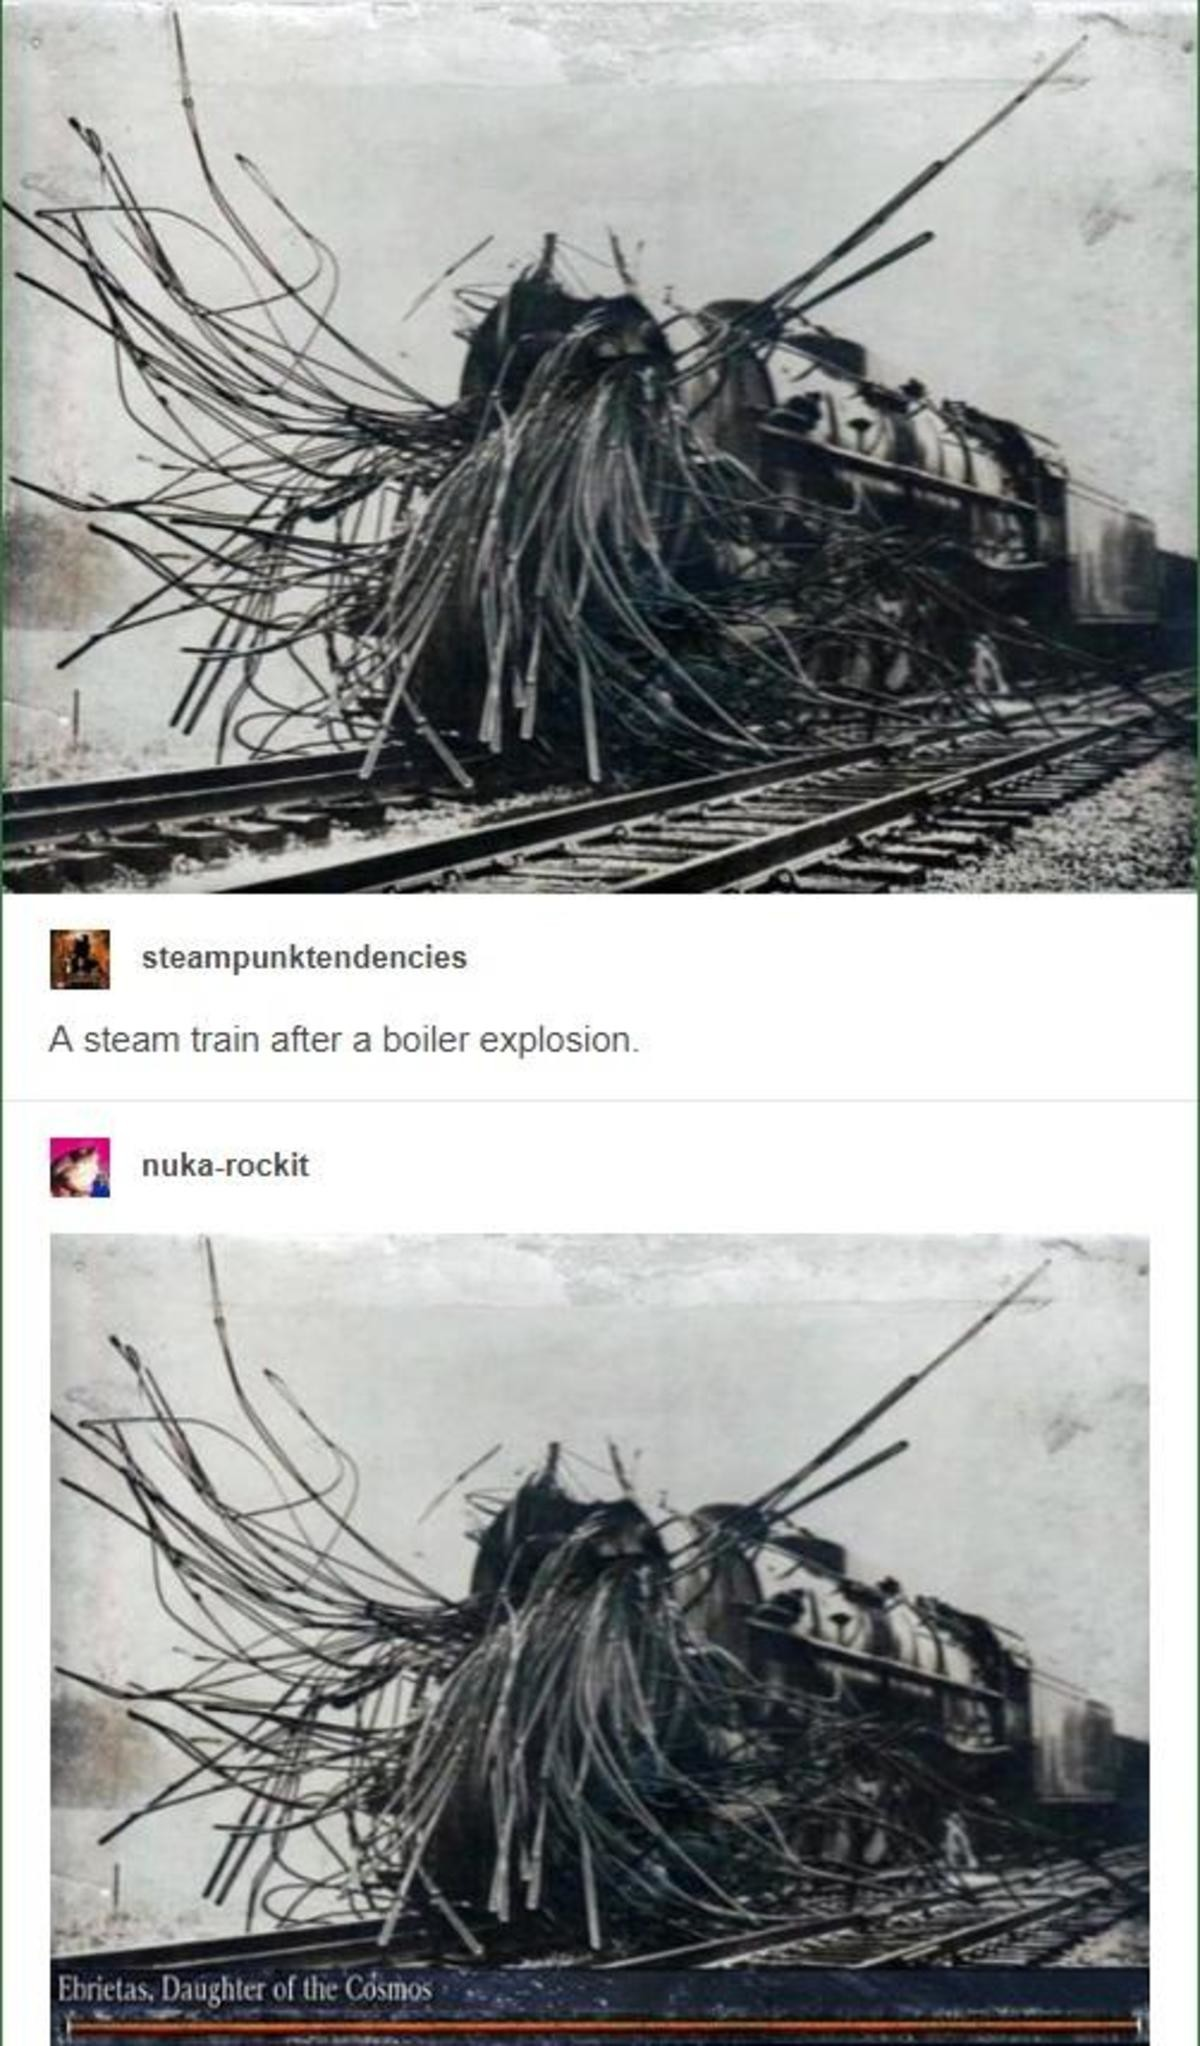 Spooky ooky train. .. The thing I love most about bloodborne is how different bosses prey on players weaknesses meaning that different bosses will give players a hard time whereas ot